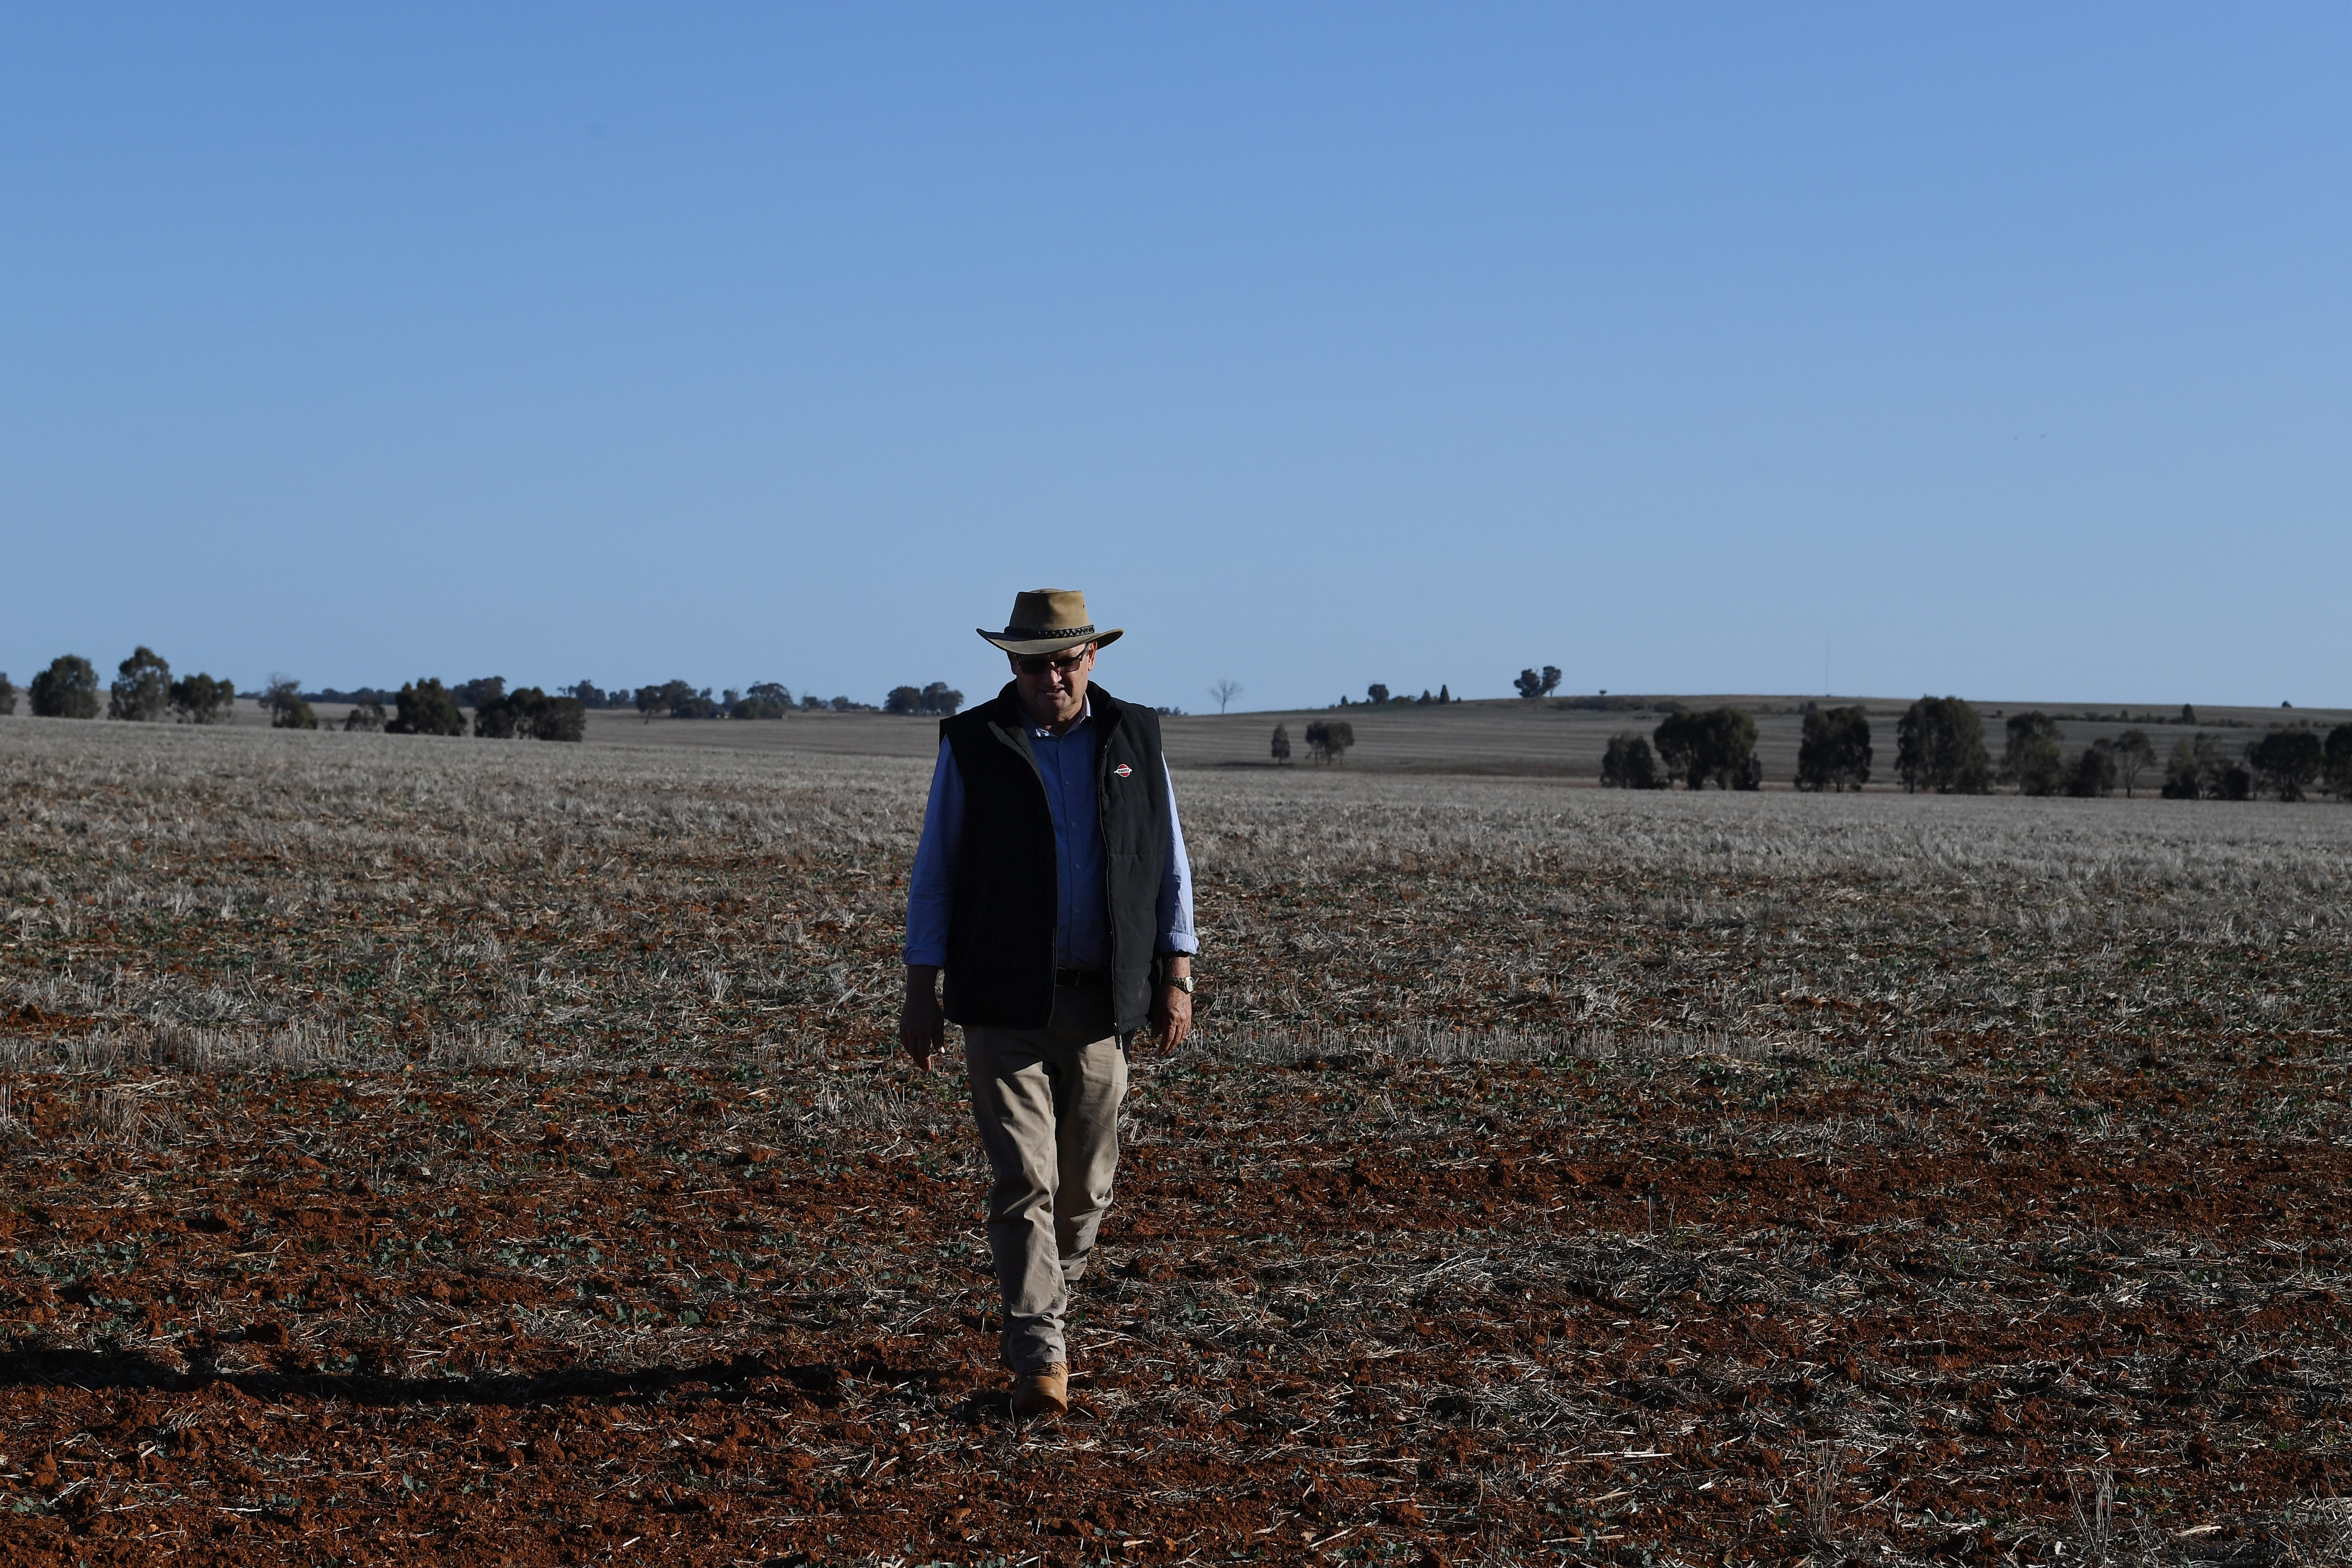 People living in rural Australia are particularly susceptible to increased rates of mental illness due to the effects of climate change.